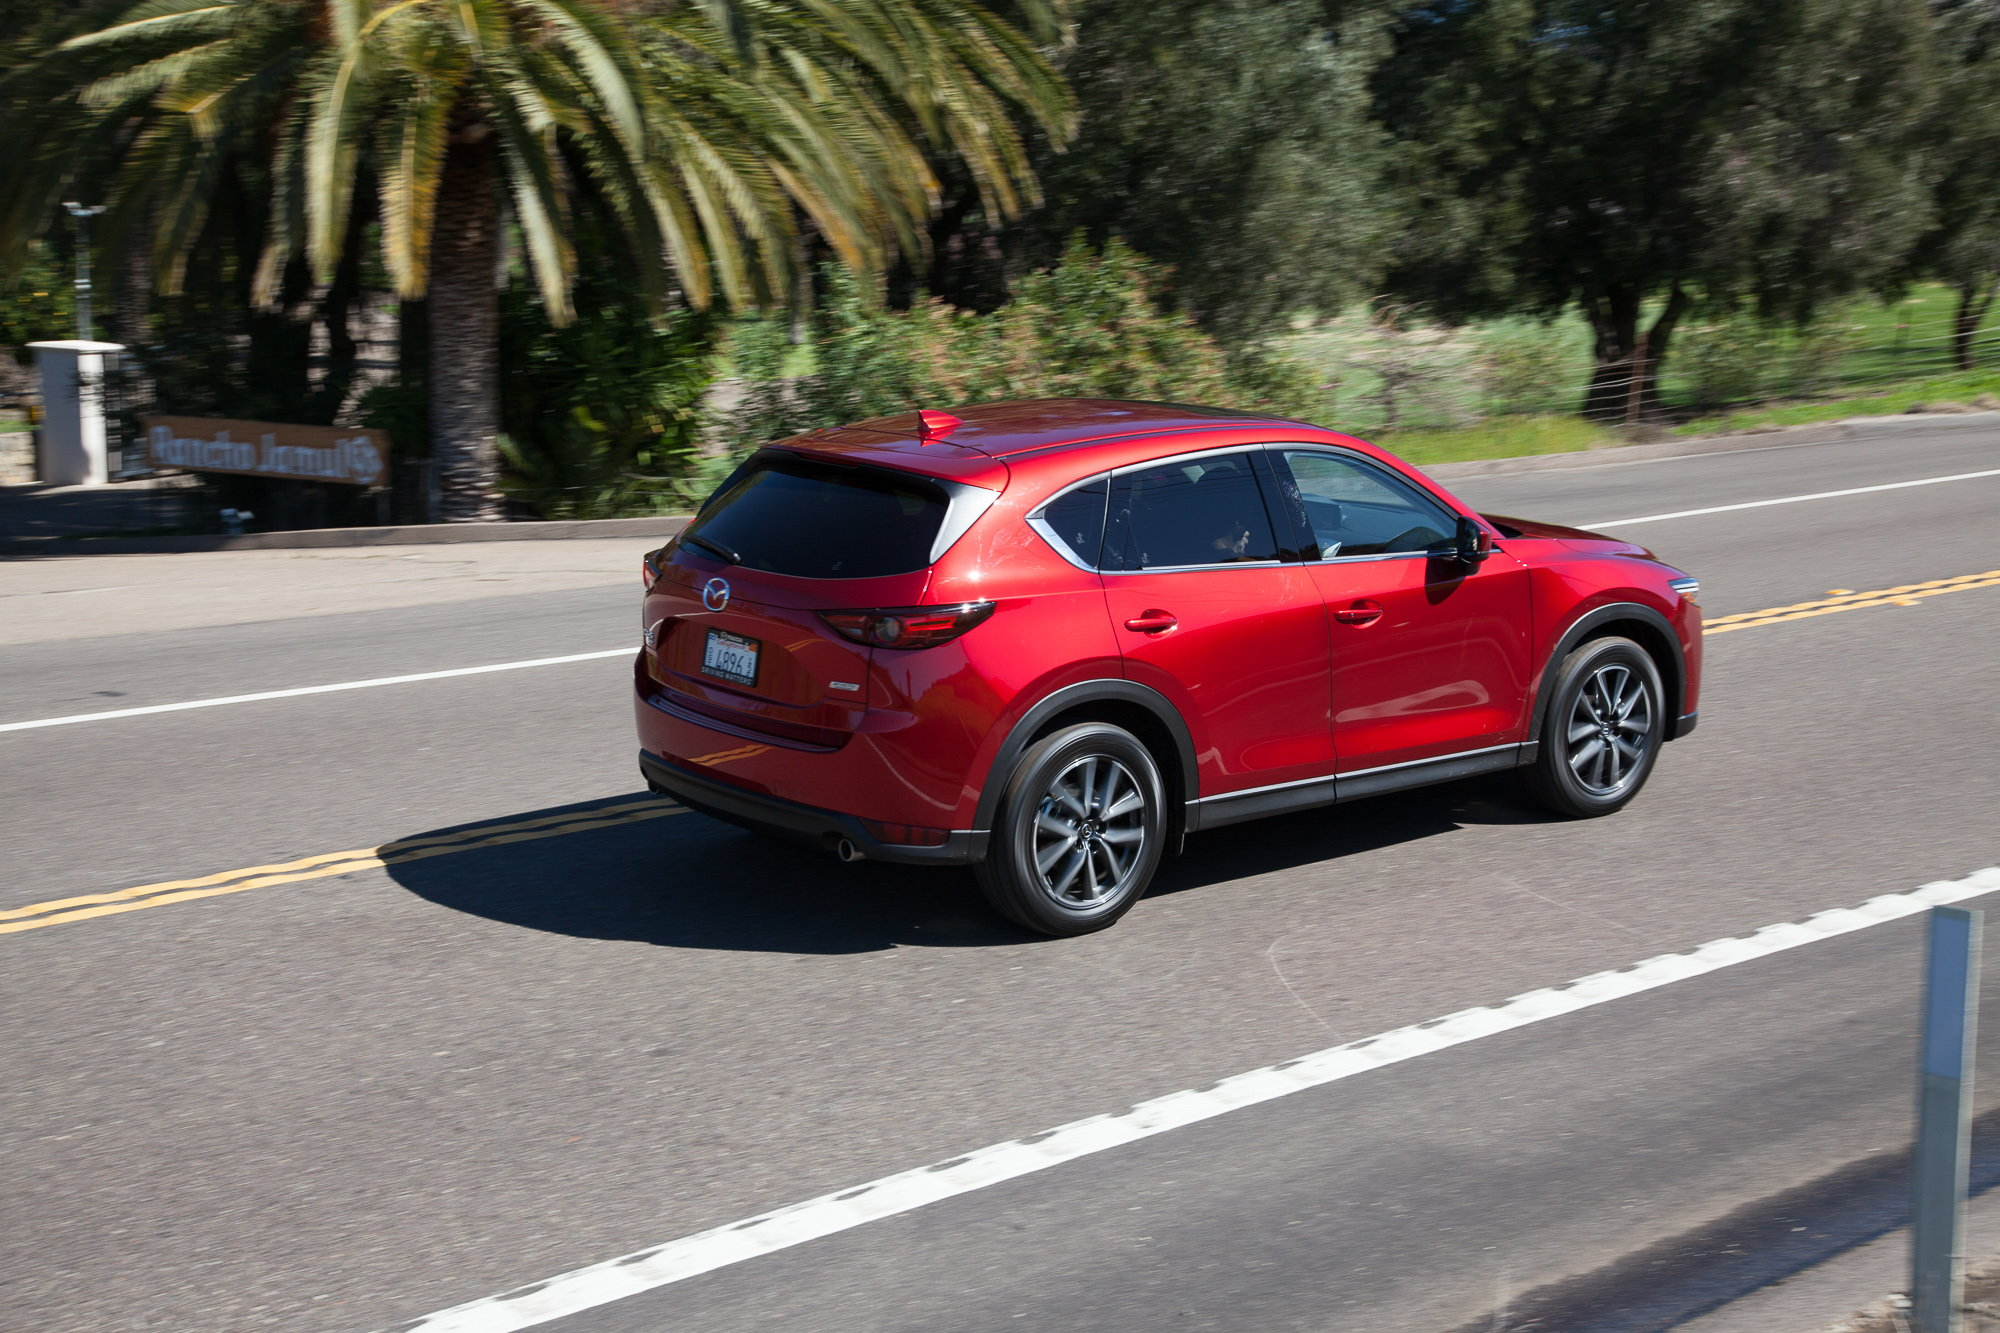 2018 mazda cx 5 deals prices incentives leases overview carsdirect. Black Bedroom Furniture Sets. Home Design Ideas